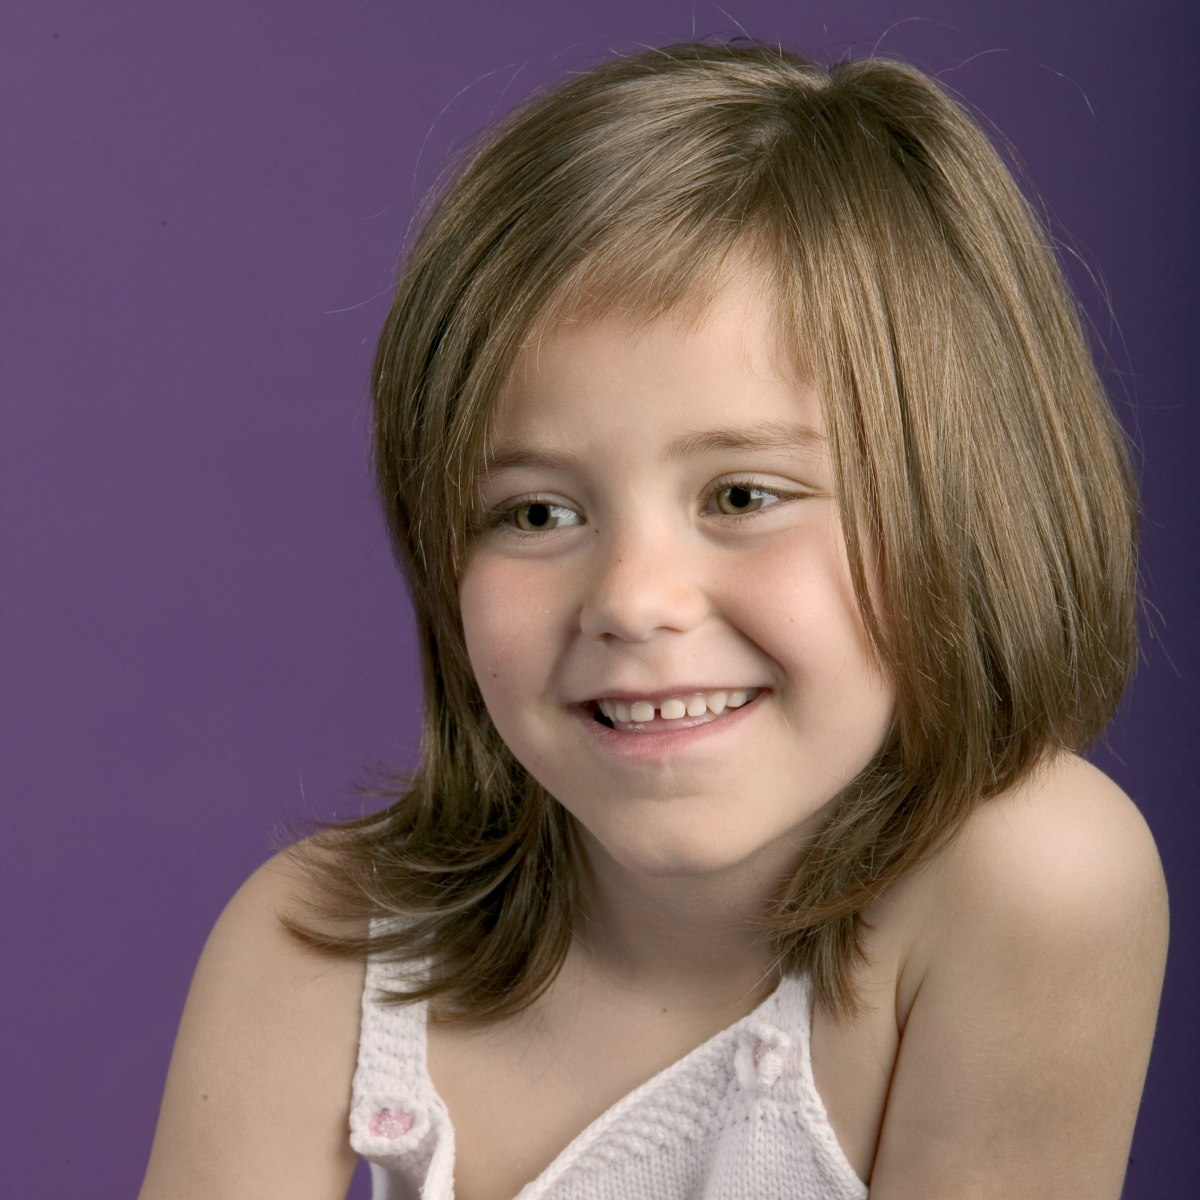 shoulder length hair styles for kids